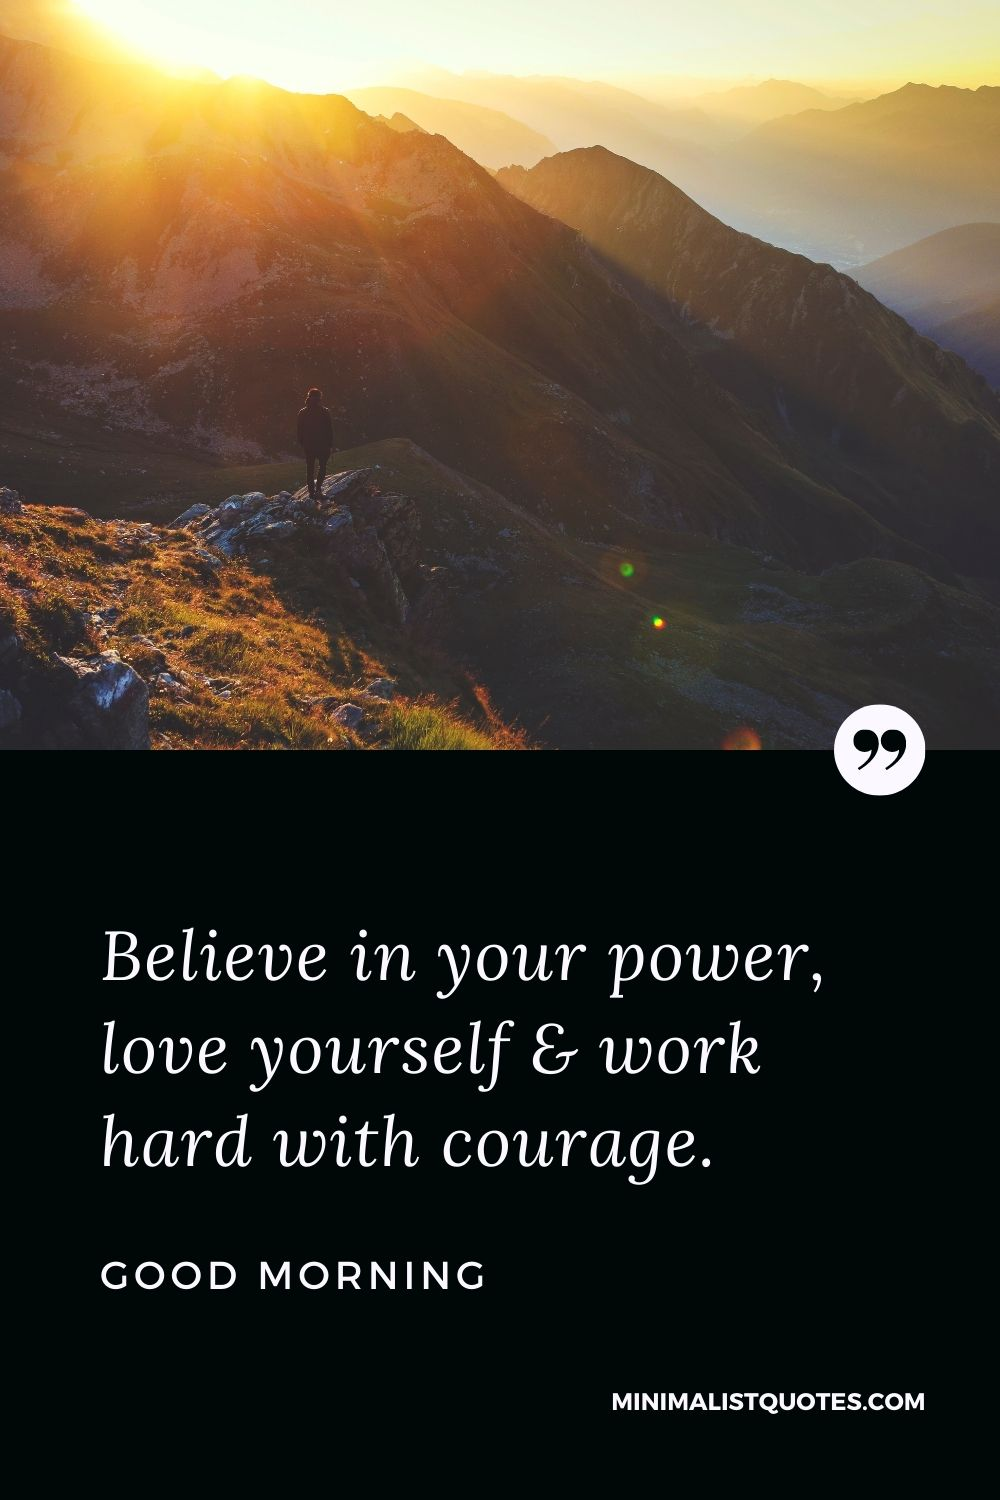 Good Morning Wish & Message With Image: Believein your power, love yourself & work hard with courage.